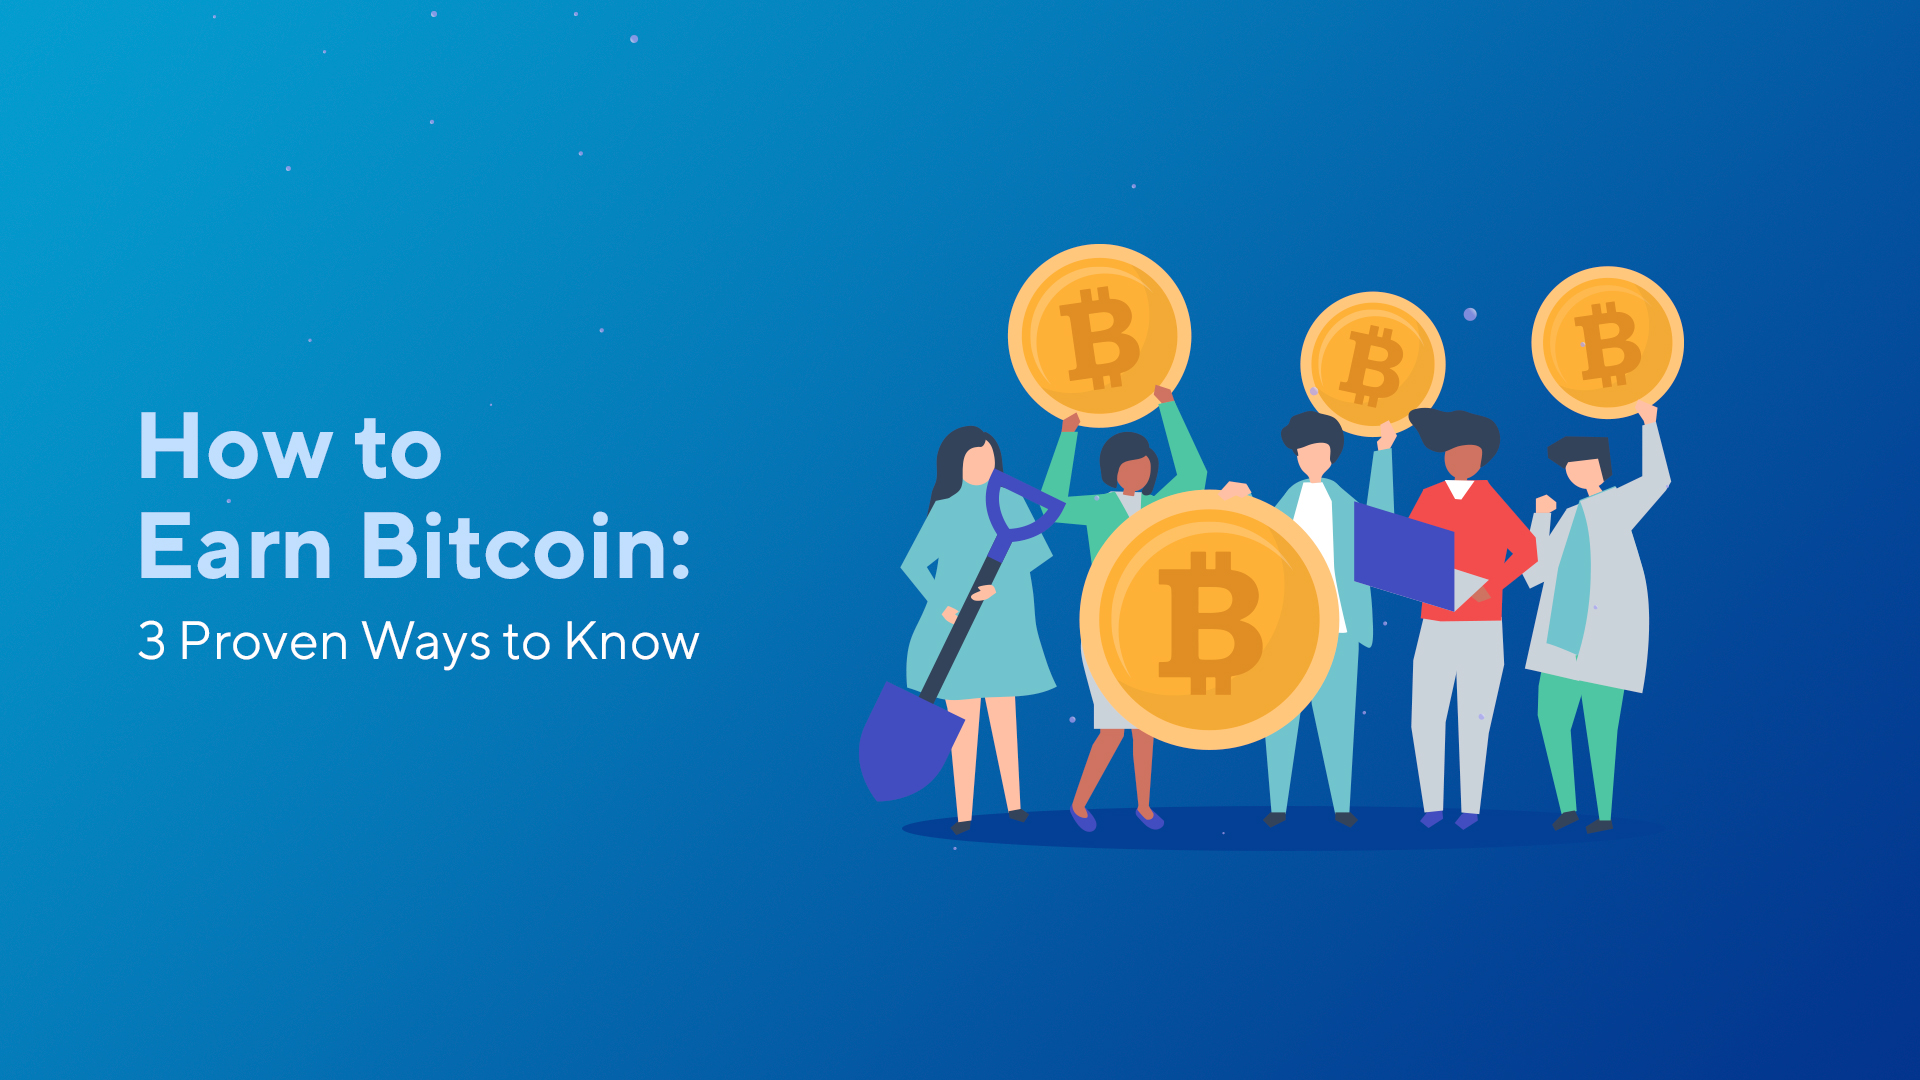 How to Earn Bitcoin: 3 Proven Ways to Know